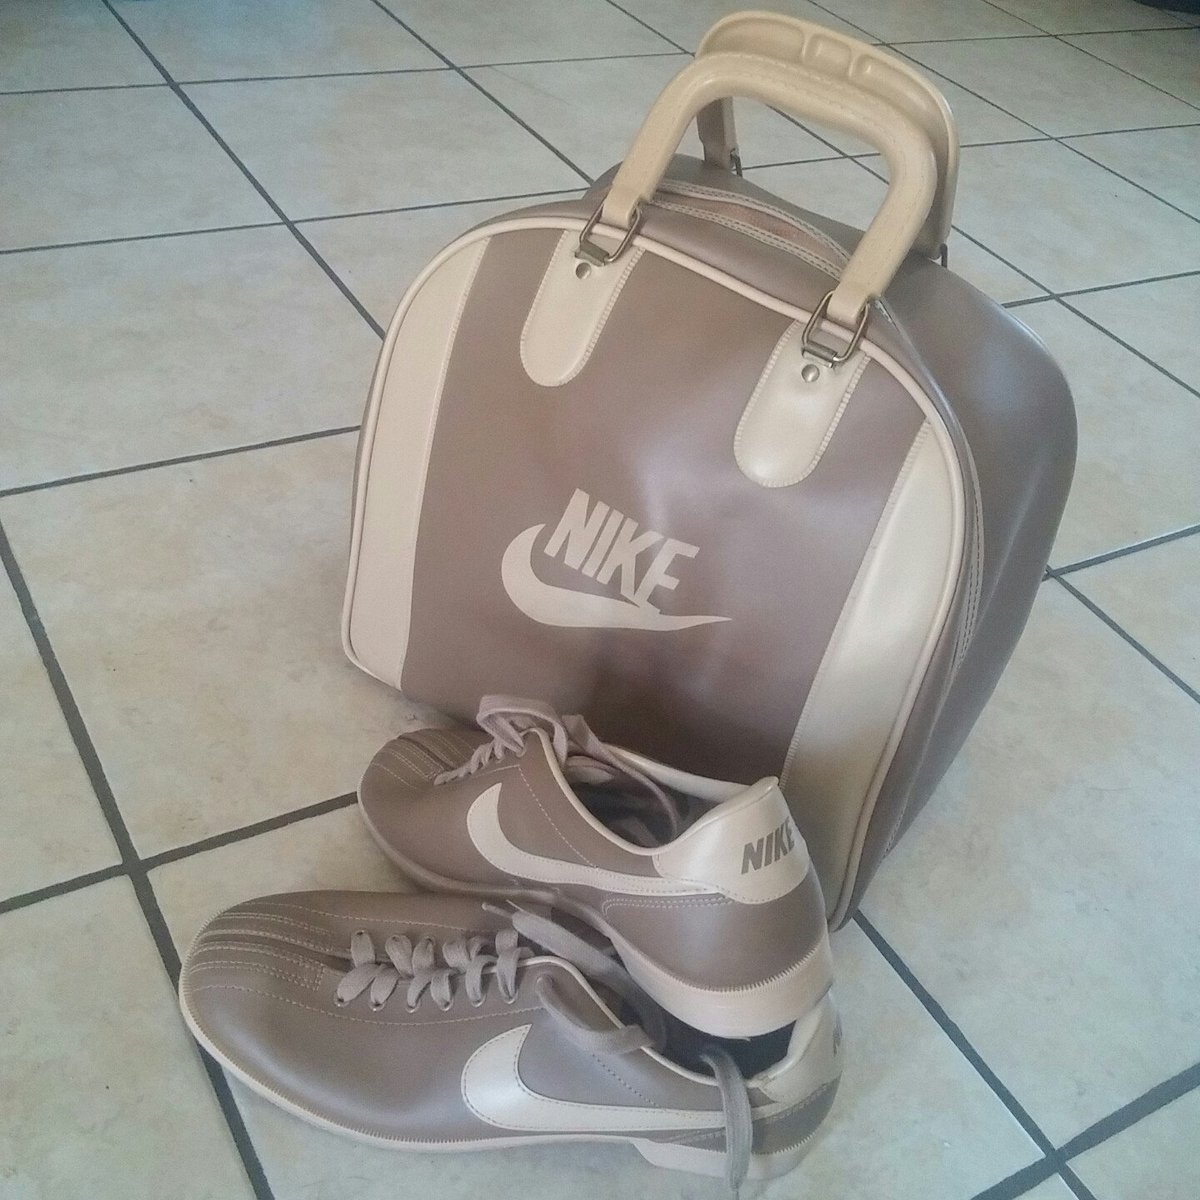 #TBT to when Nike made #bowling equipment. Who out there remembers? #nike #vintage #oldschoolcool https://t.co/v30TwIDzfT